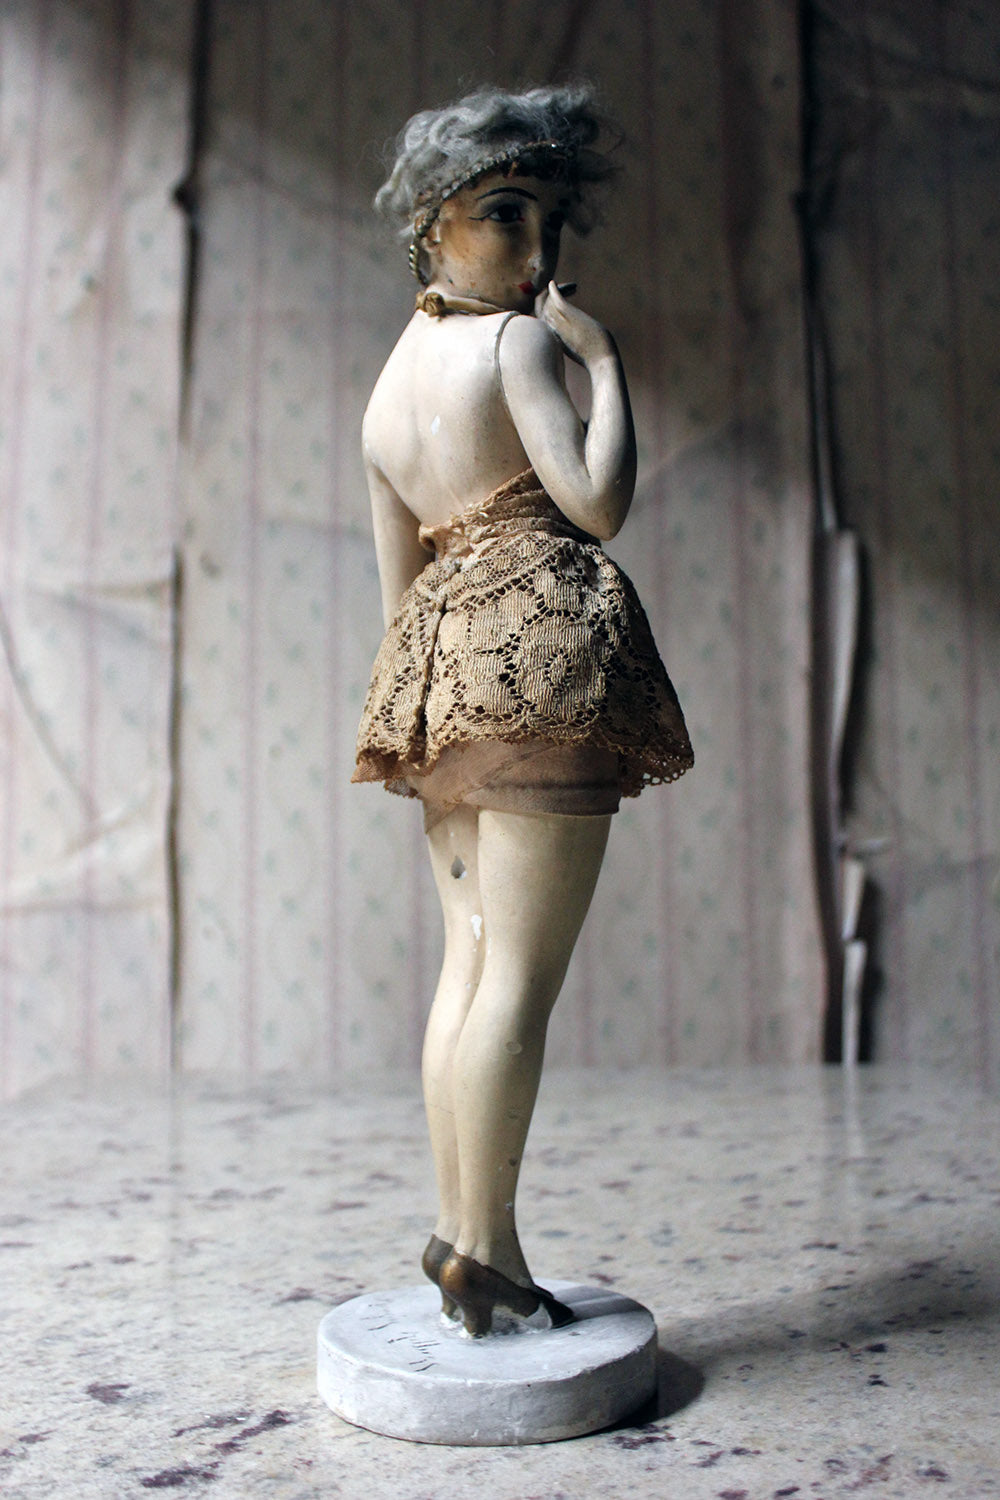 An Art Deco Period Plaster Boudoir Figure of a Flapper by Maurice Milliere c.1920